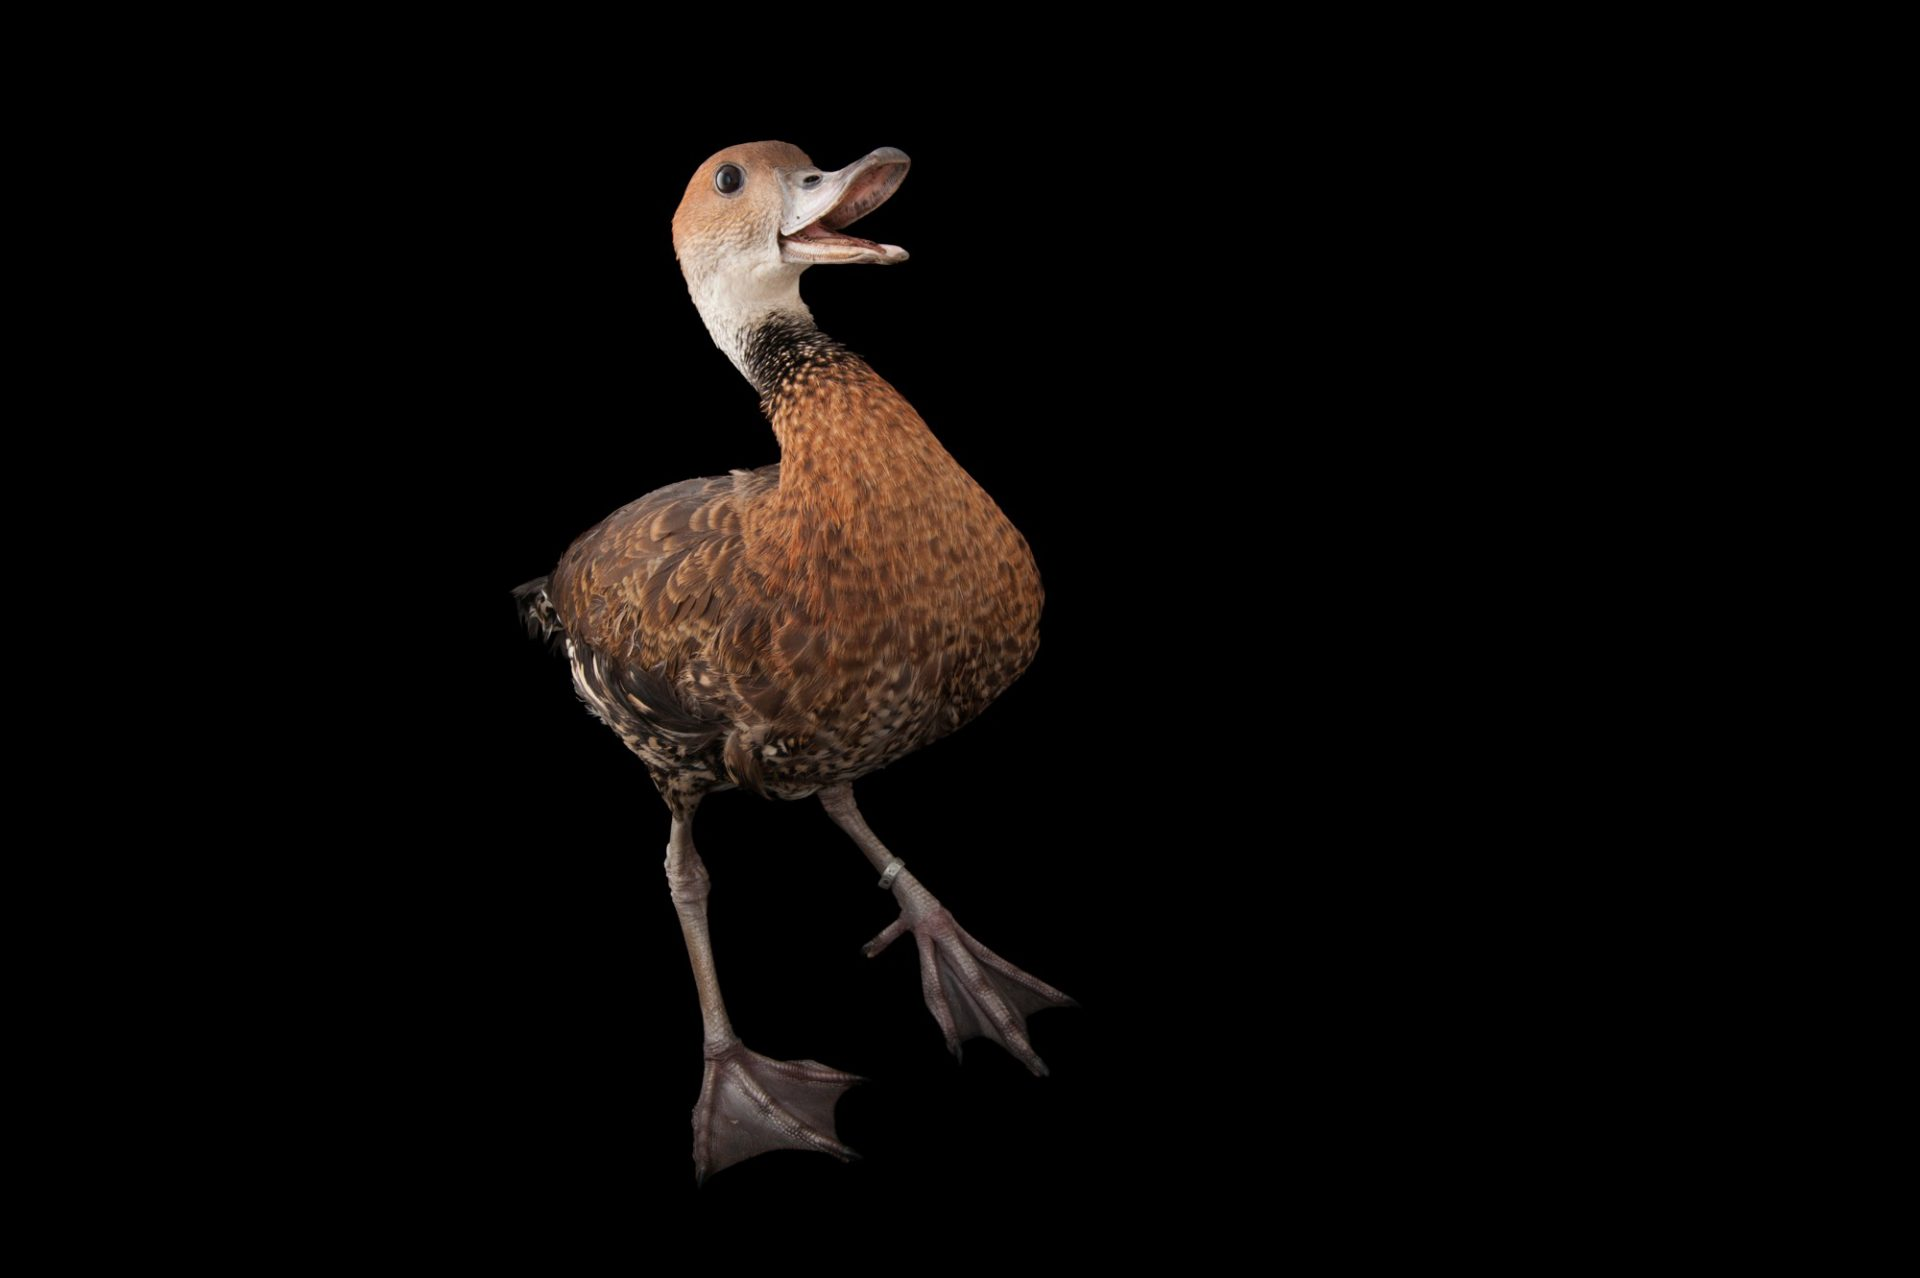 Photo: A West Indian Whistling-duck (Dendrocygna arborea) at the Miller Park Zoo. This species is listed at vulnerable on the IUCN Red List.